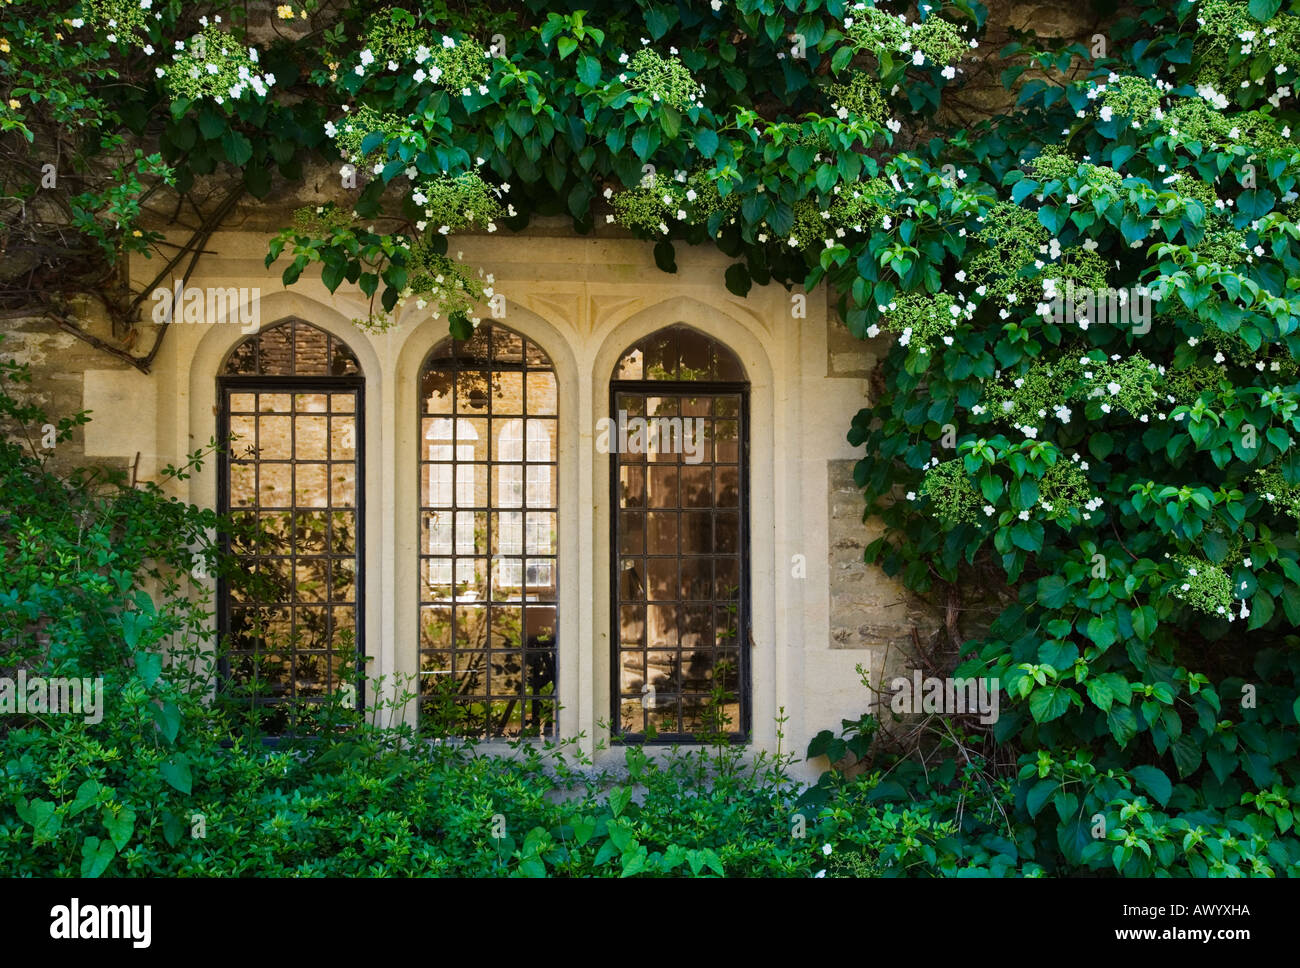 Hydrangea petiolaris clmbing over the stone walls and three transomed lights of a window at C15th Great Chalfield Manor - Stock Image